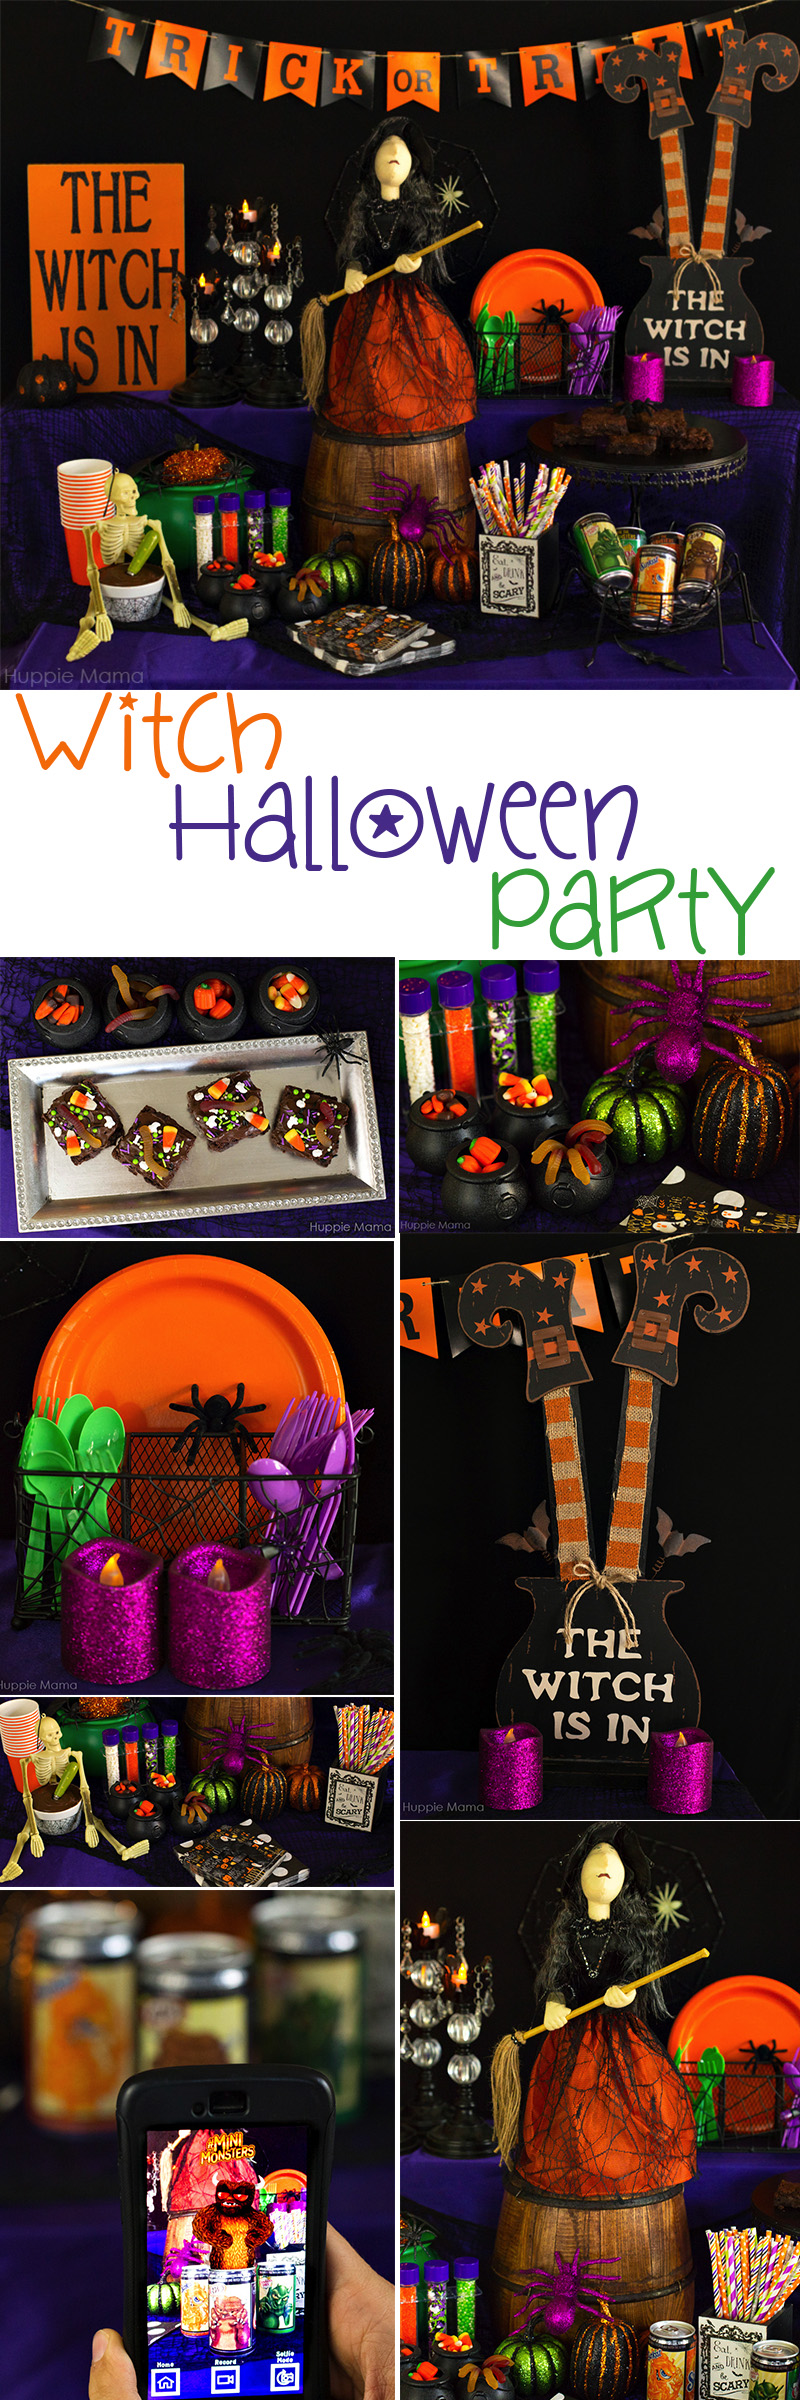 witch-halloween-party